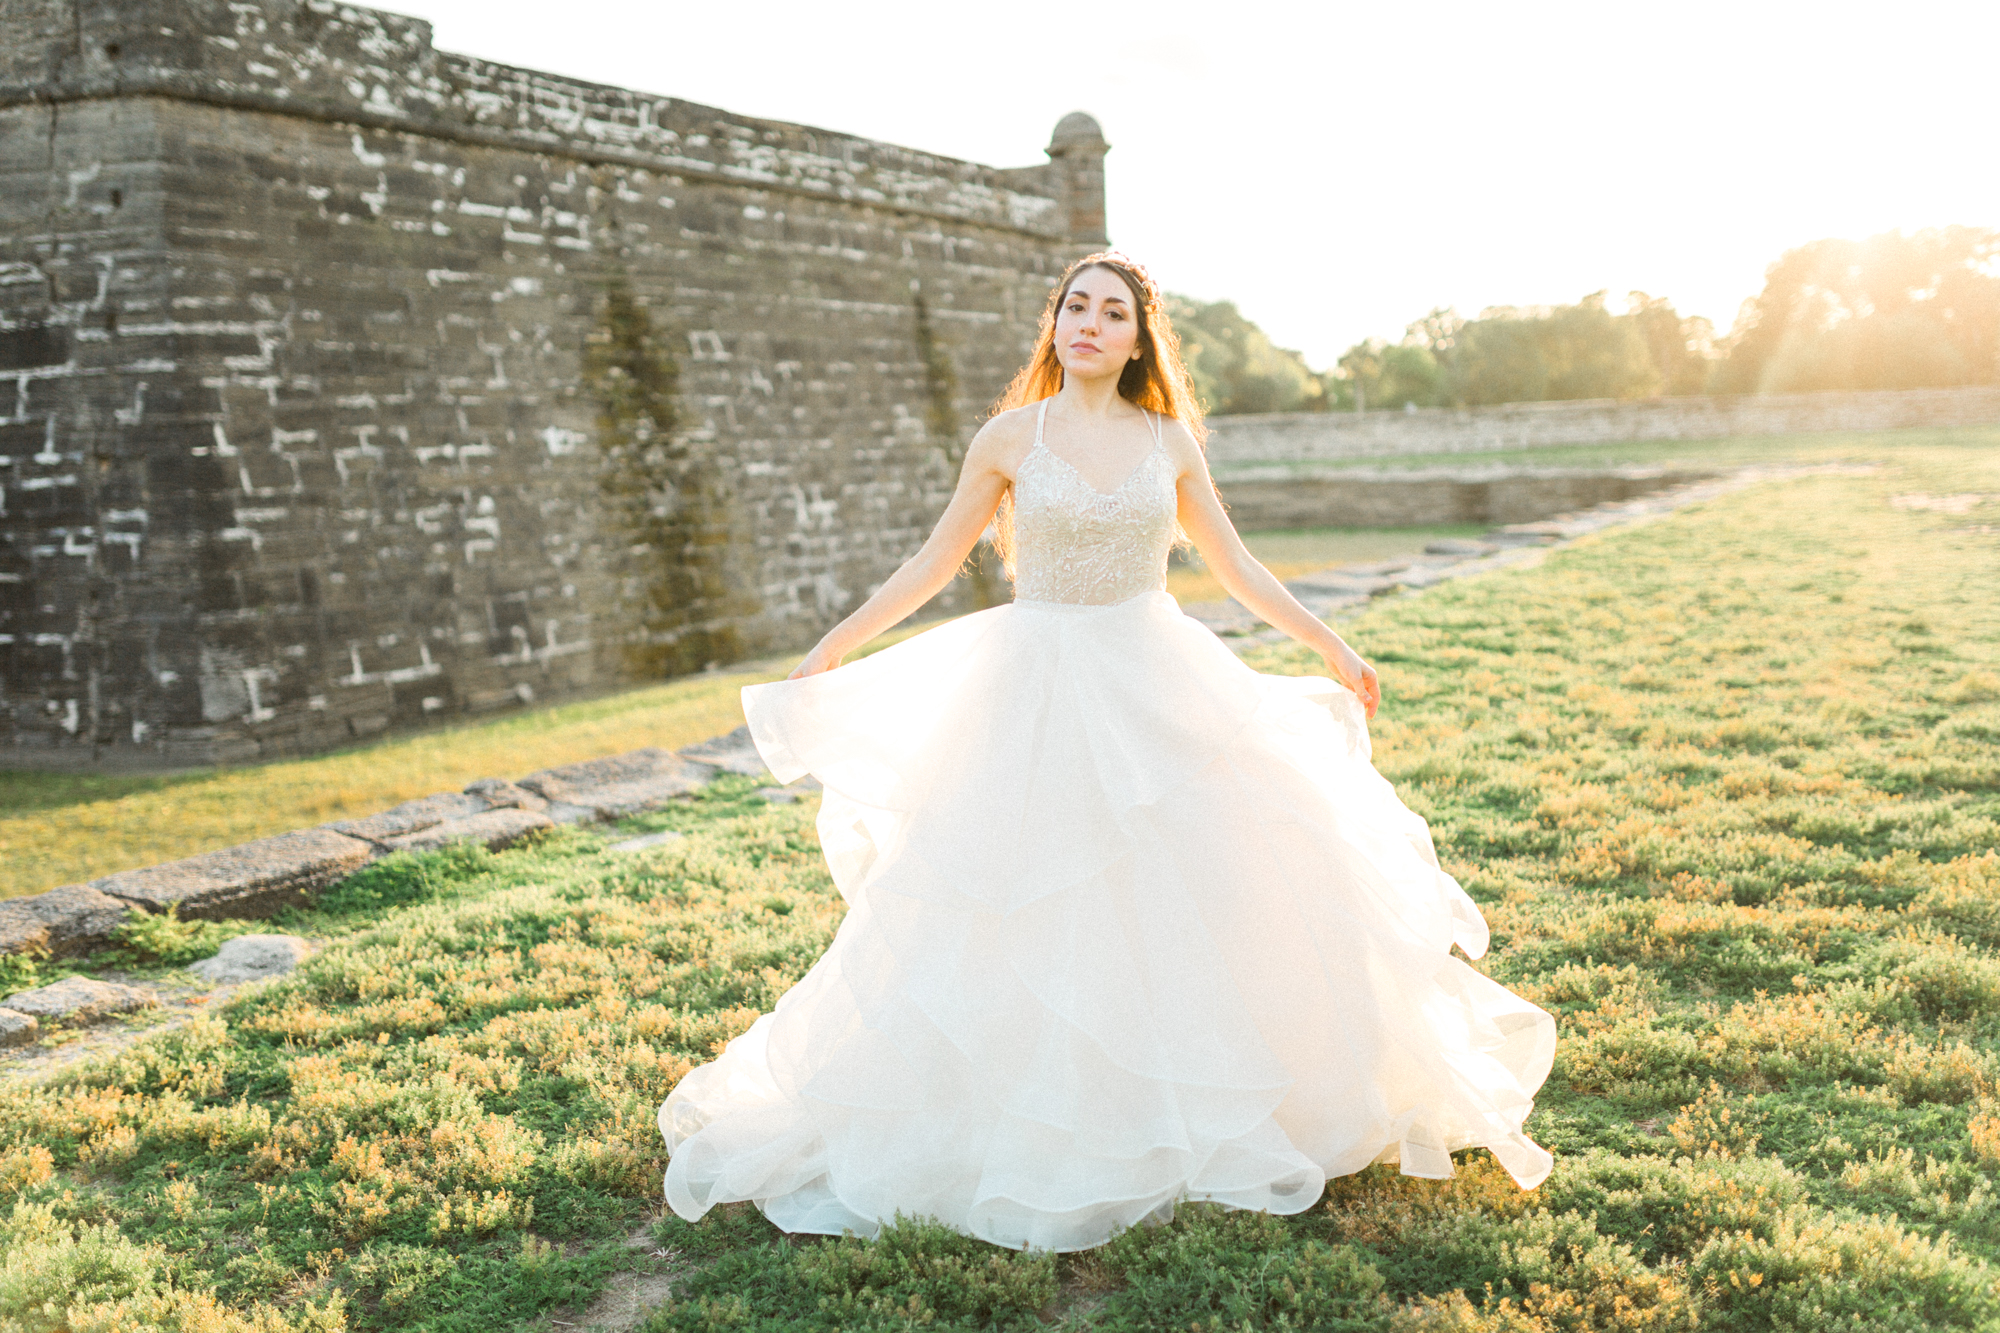 St. augustine, castillo de san marcos styled wedding bridal photo, bride in wedding dress, fine art